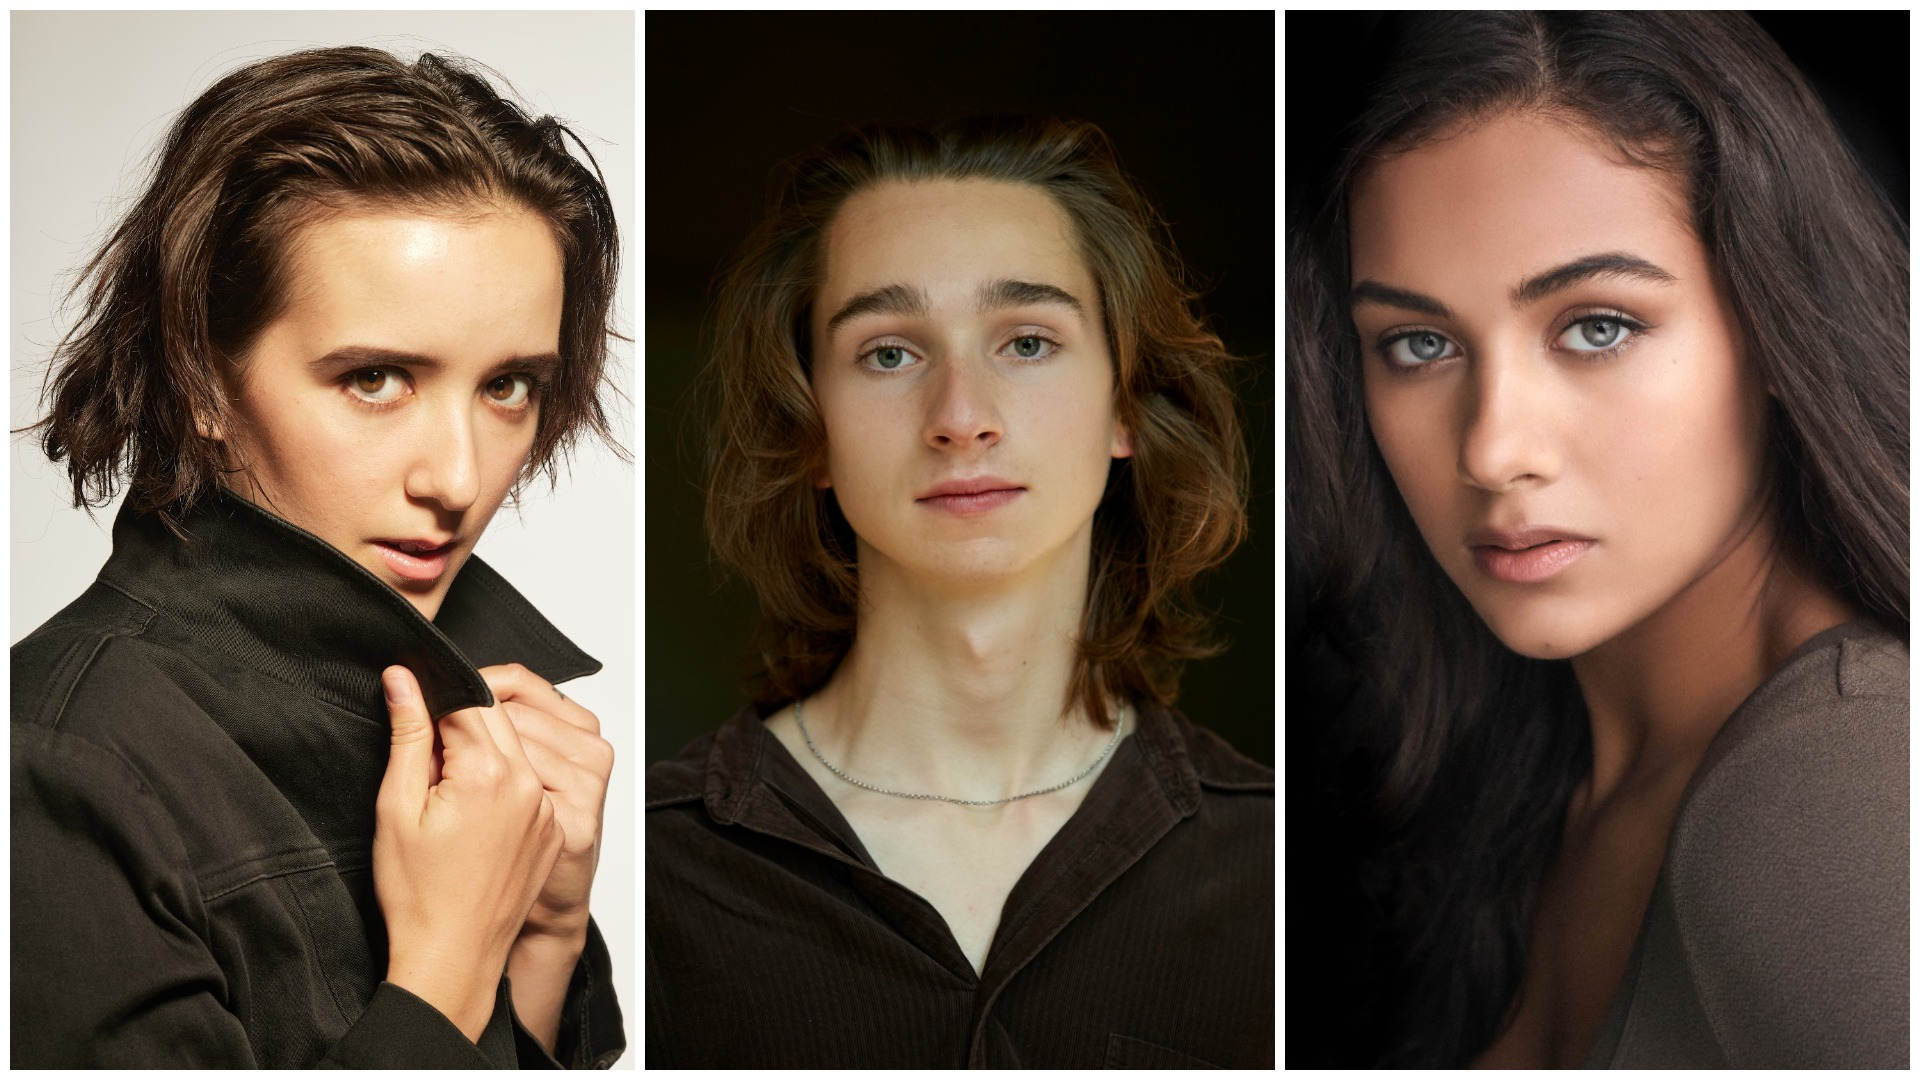 Amazon YA Pilot 'Shelter' Adds Three to Cast (EXCLUSIVE)